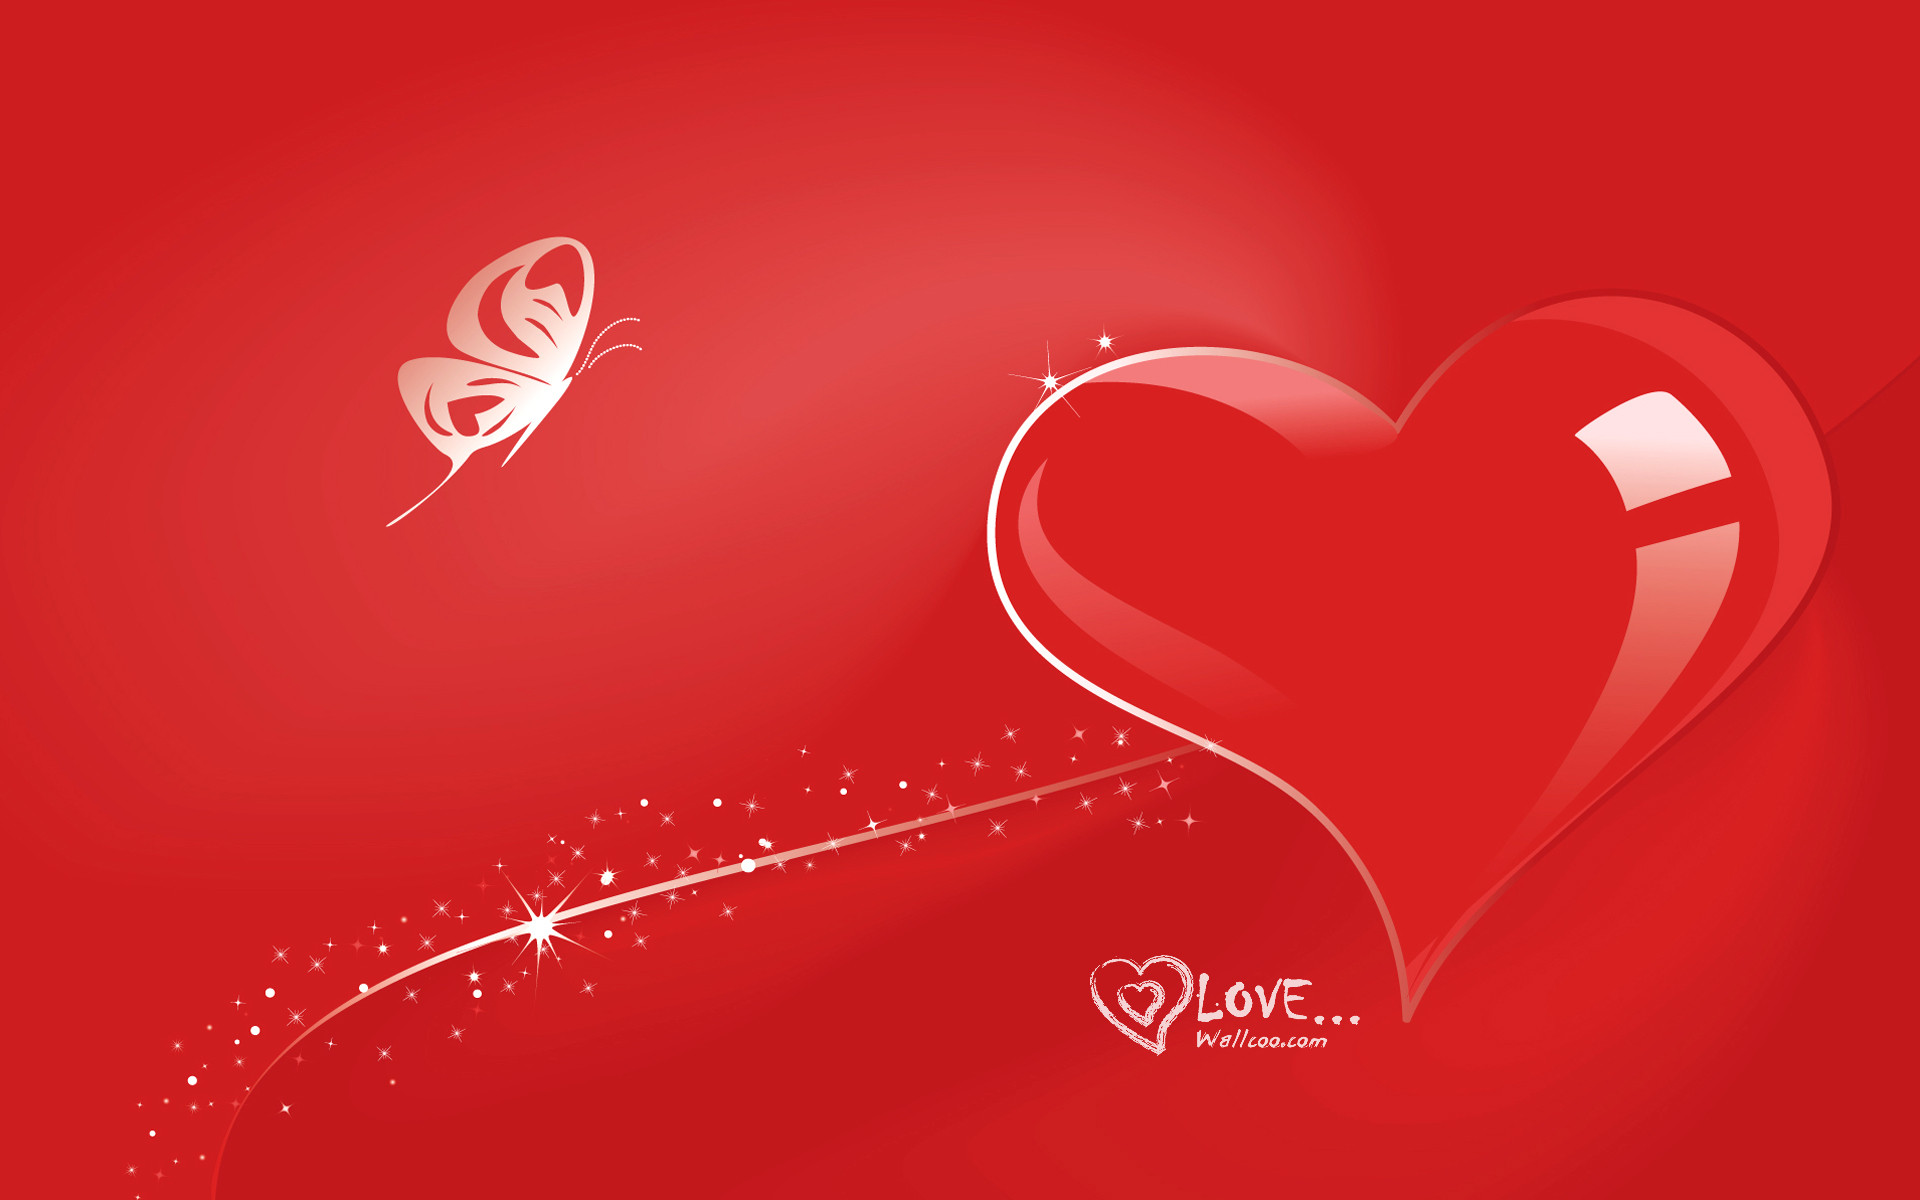 holiday hearts wallpaper vector - photo #9